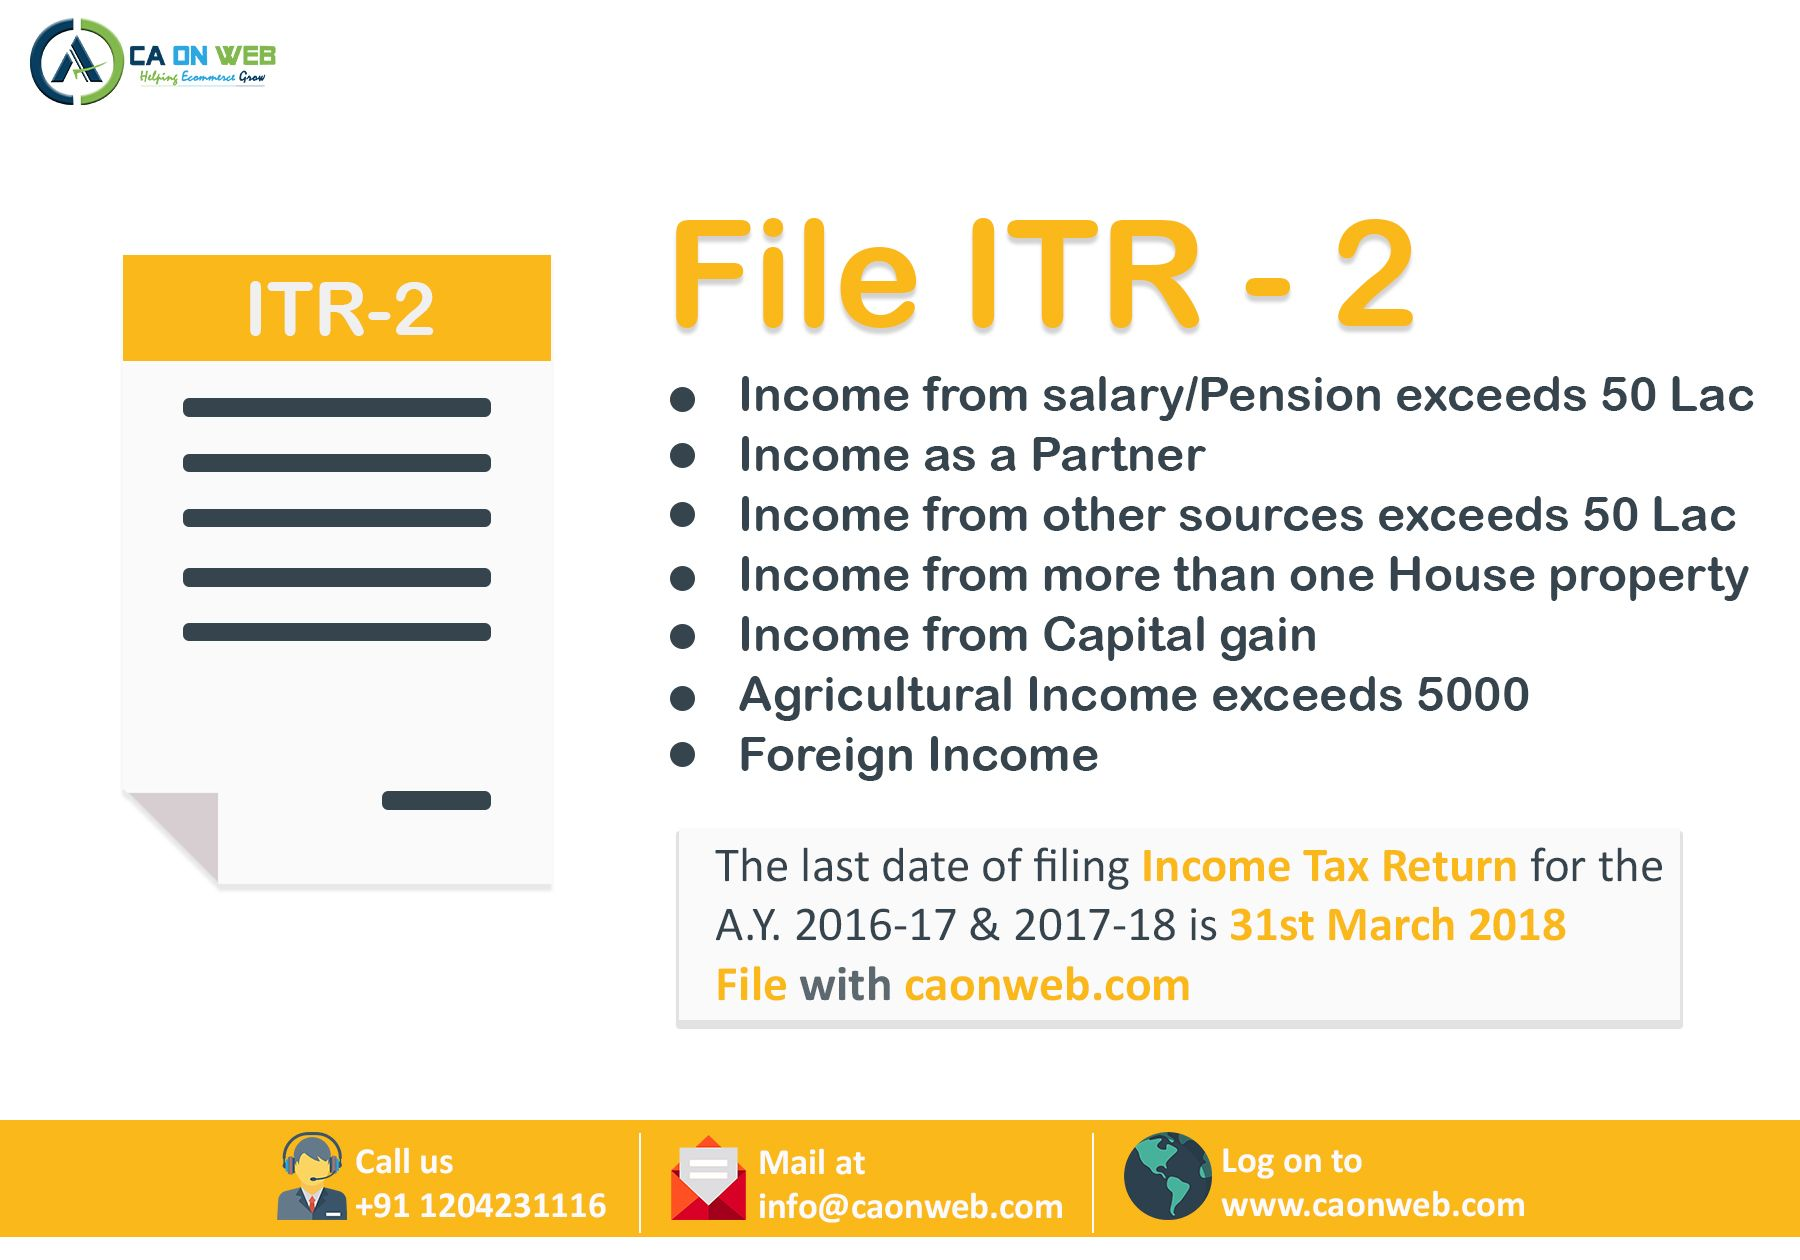 Pin by ca services online on CA ON WEB | Income tax return